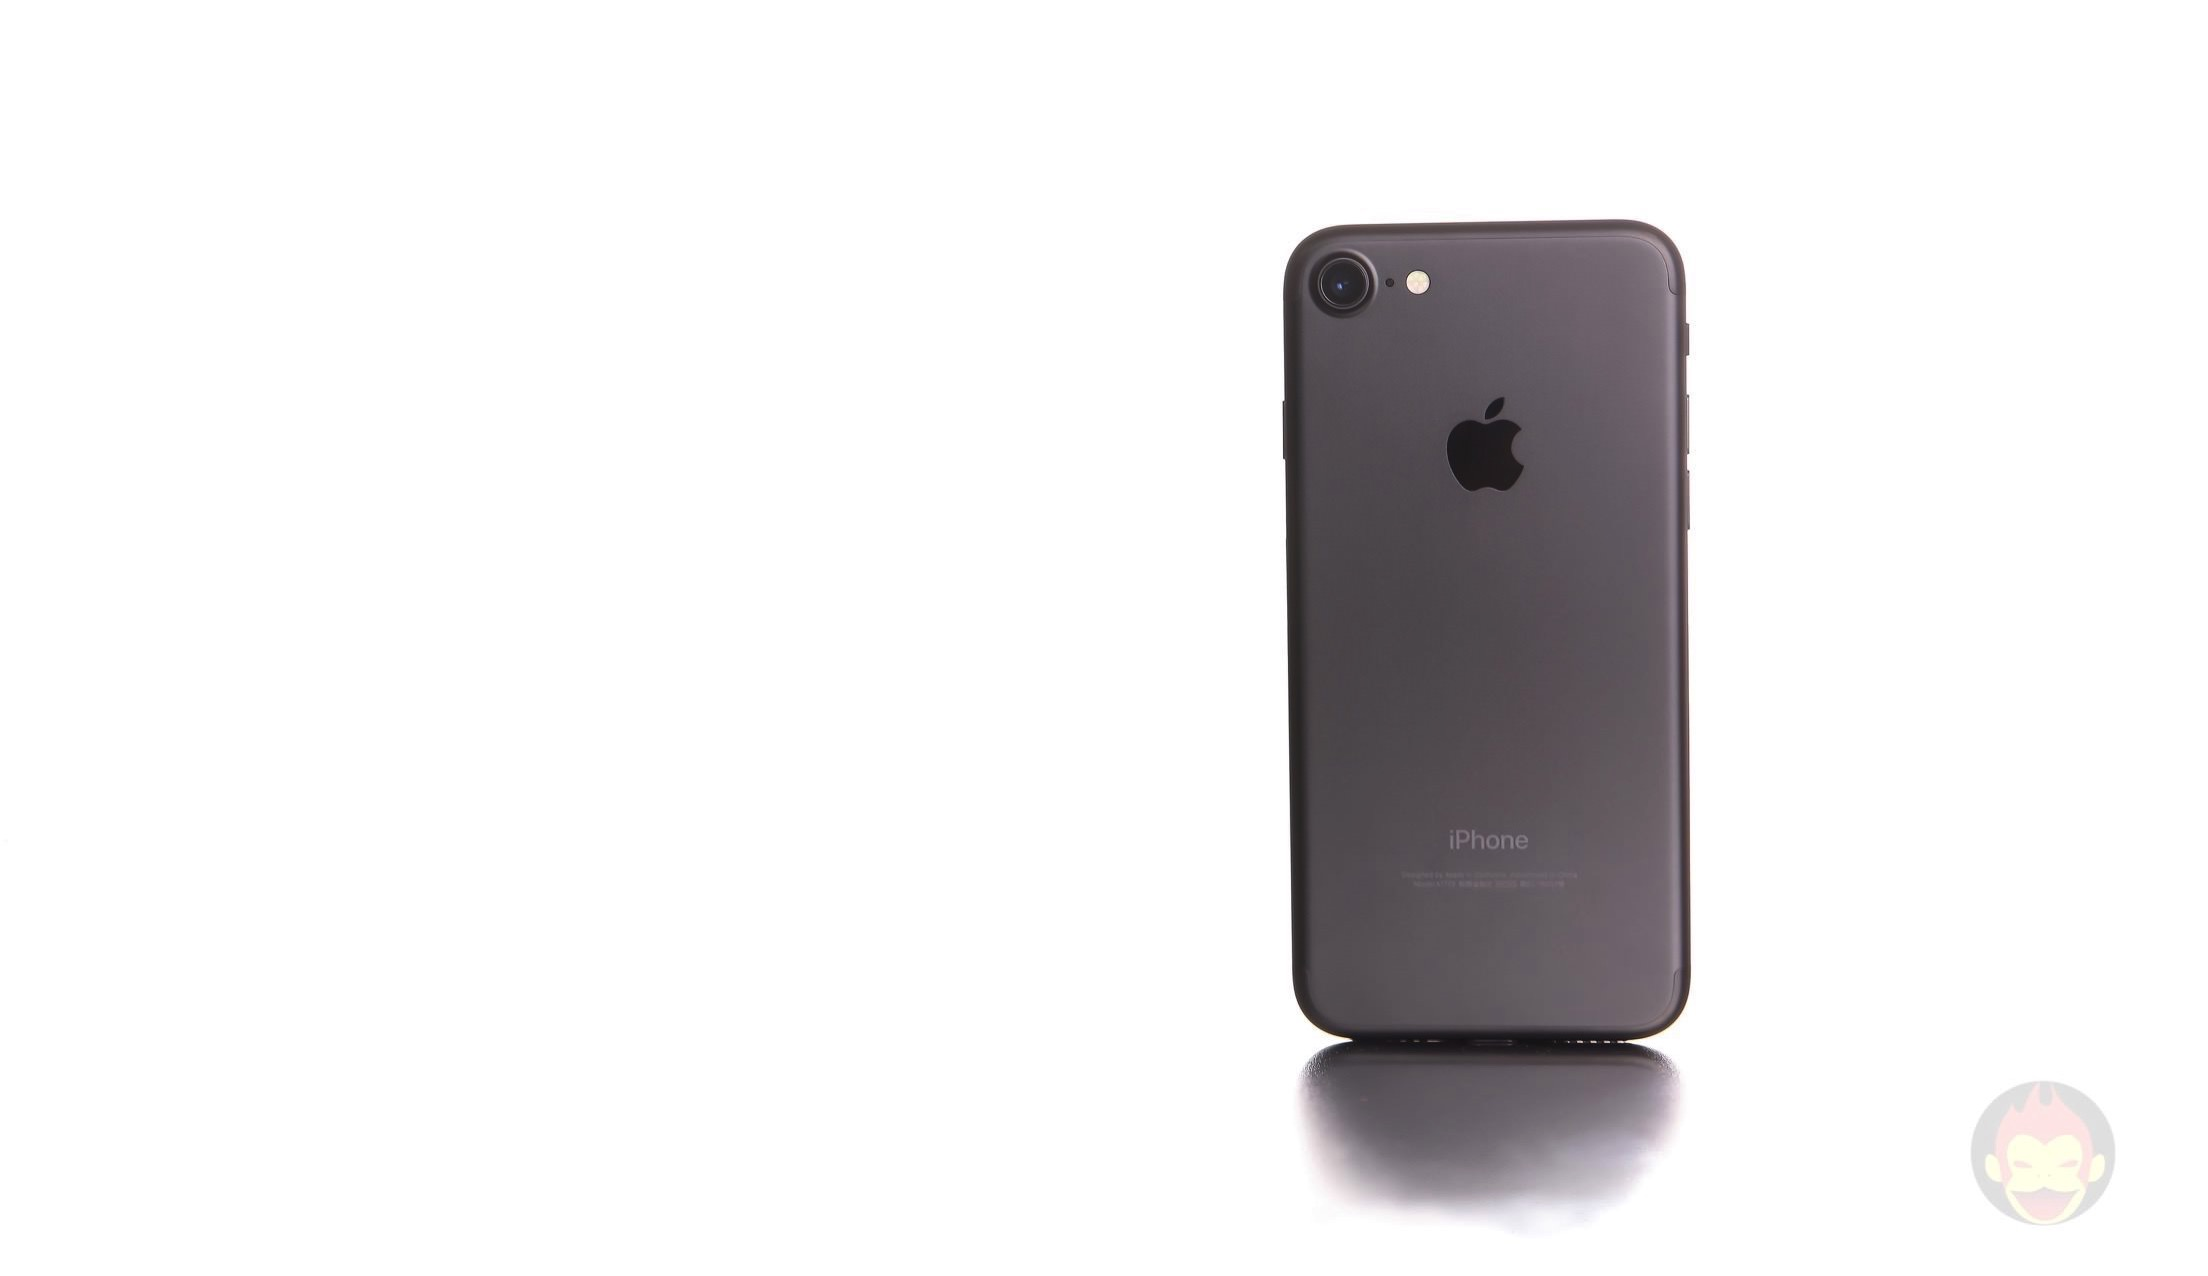 iPhone-7-Review-00.jpg